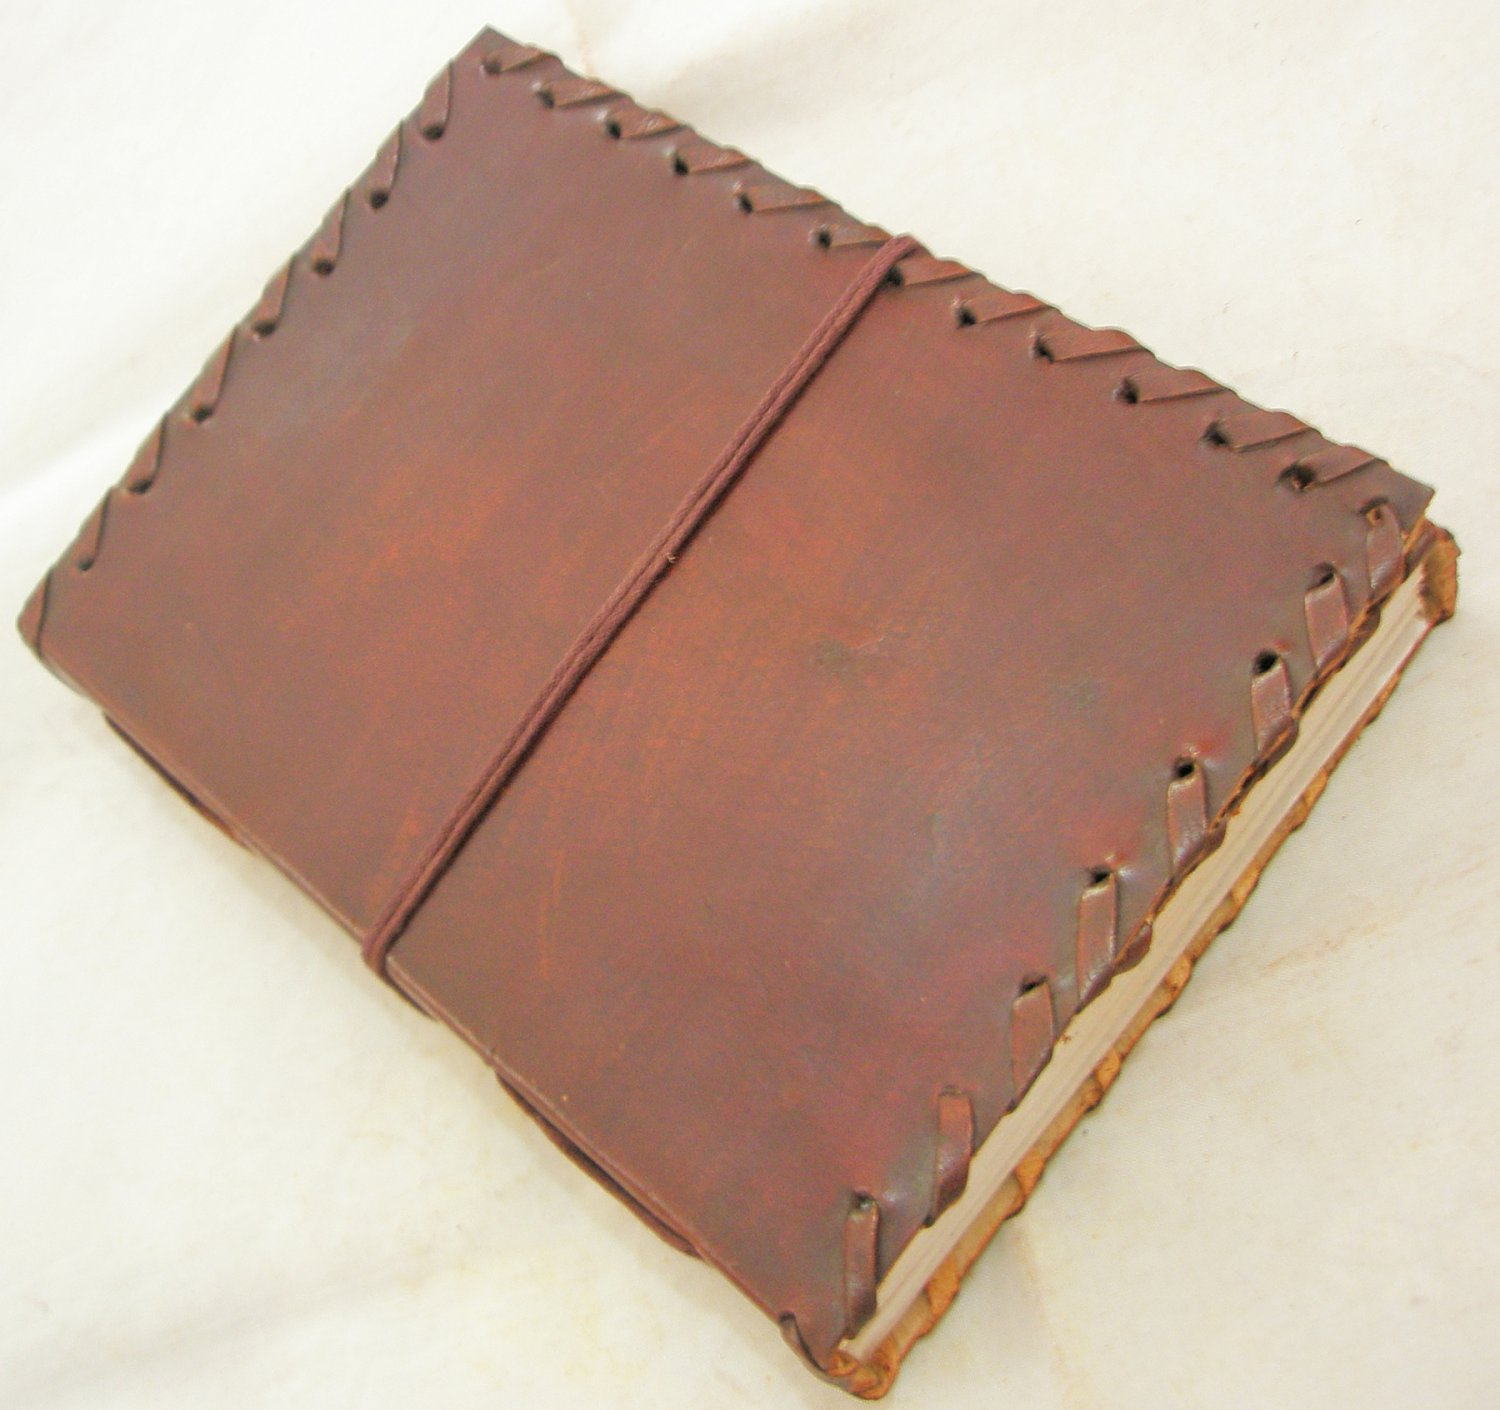 Handmade Paper Leather Bound Journal Blank Book Personal Diary Writing Notebook Sketchbook Art